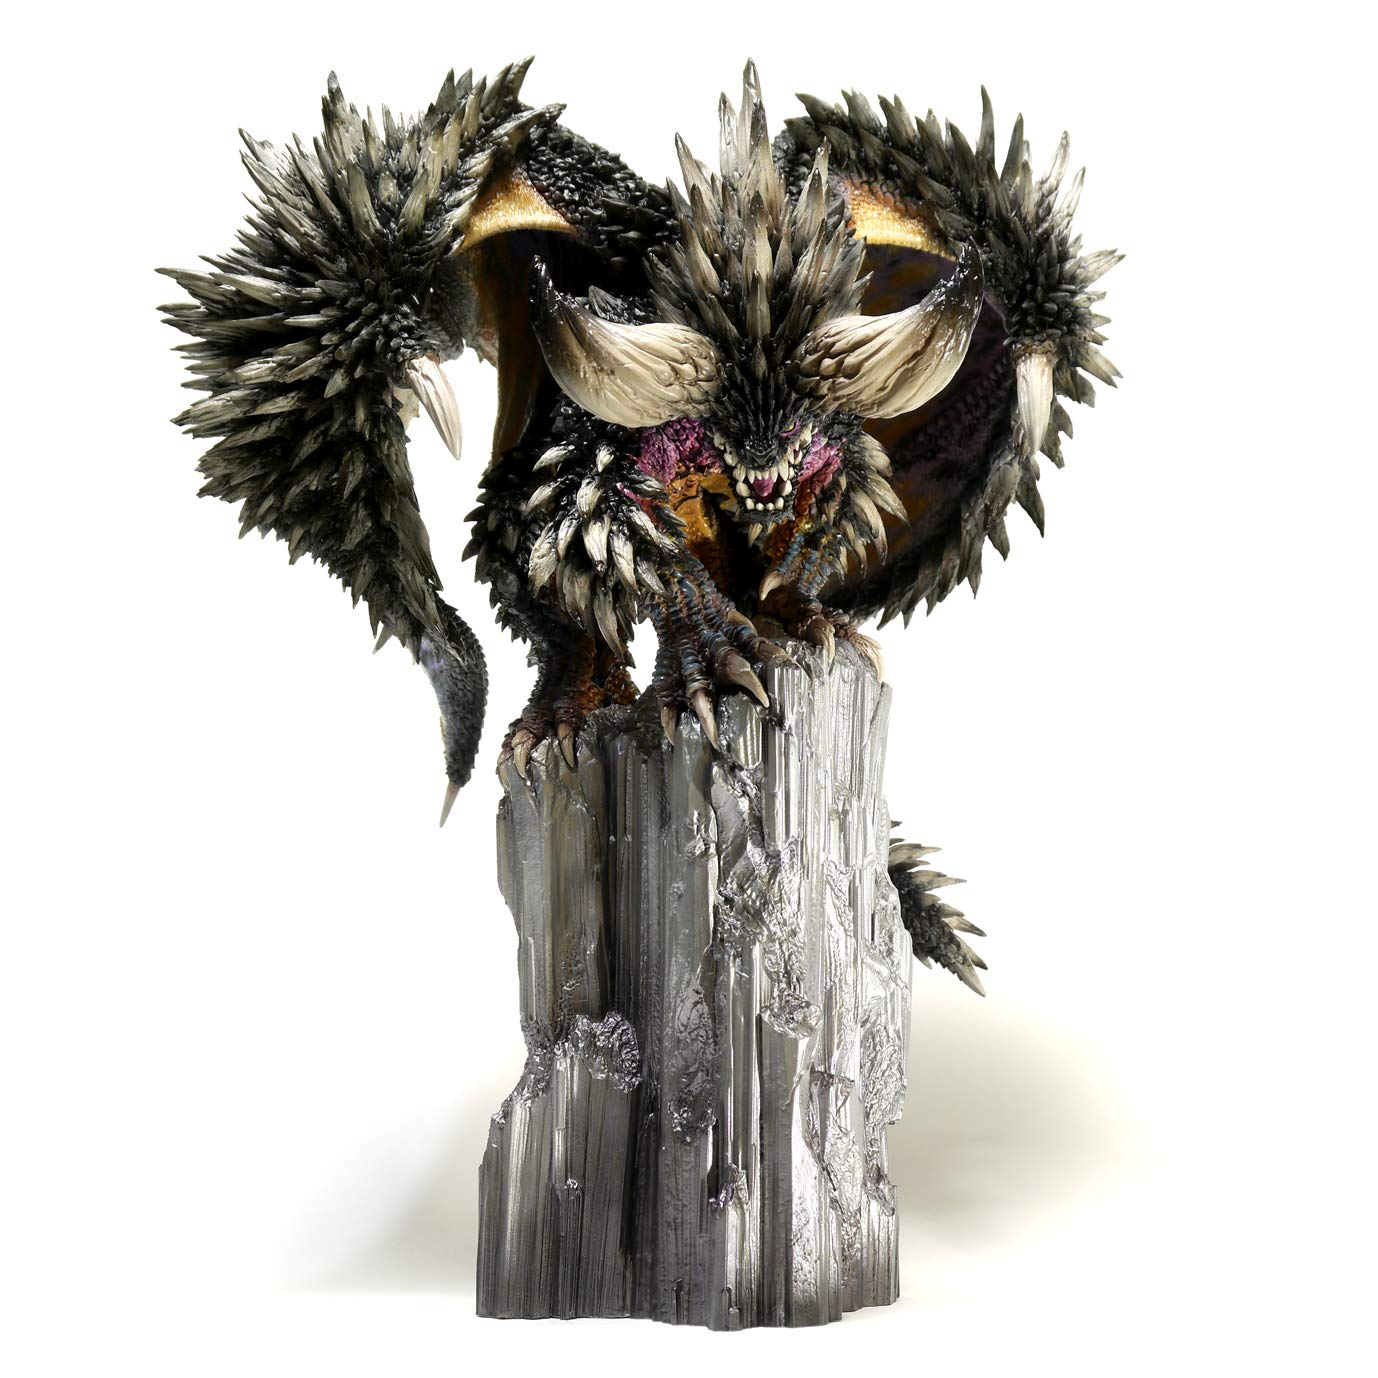 Monster Hunter World - Nergigante - Capcom Figure Builder Creator's Model (Capcom)